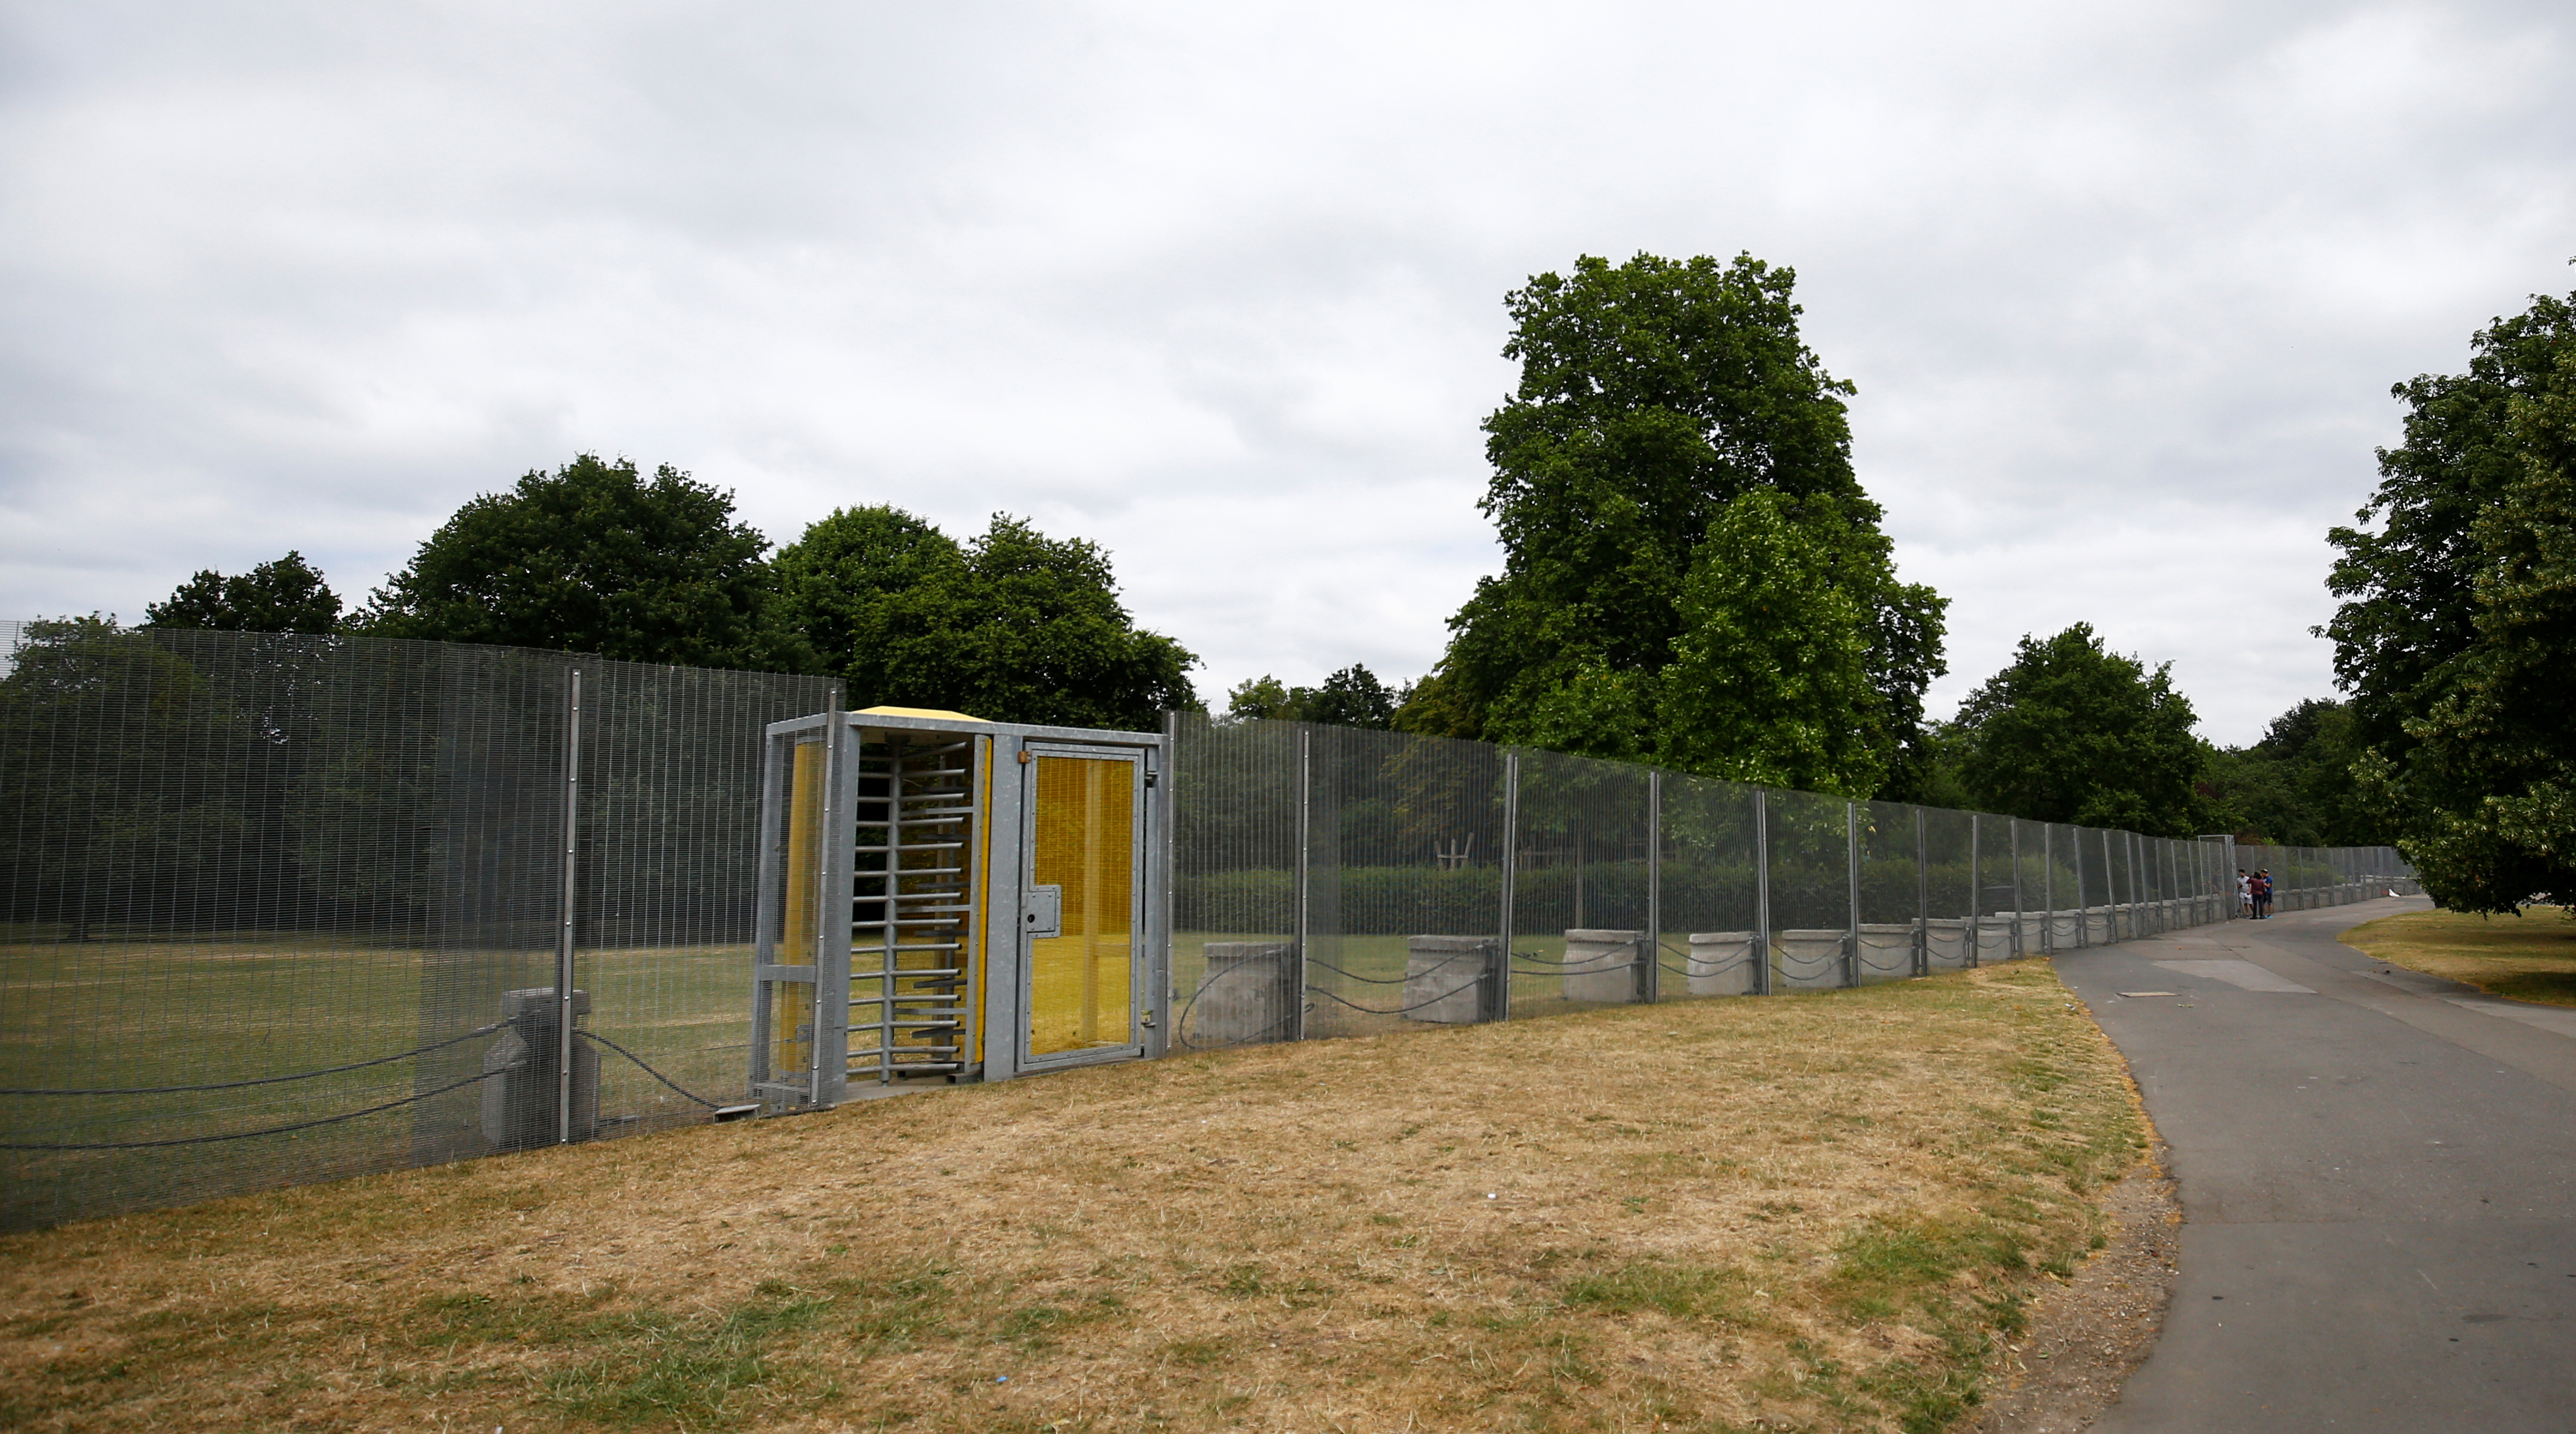 Visitors to the park use a special gate to pass through fences, that have been erected before the U.S. presidential visit at the end of the week, around the U.S. ambassador's residence in Regent's Park in London, Britain, July 10, 2018. REUTERS/Henry Nicholls - RC162E9F4960